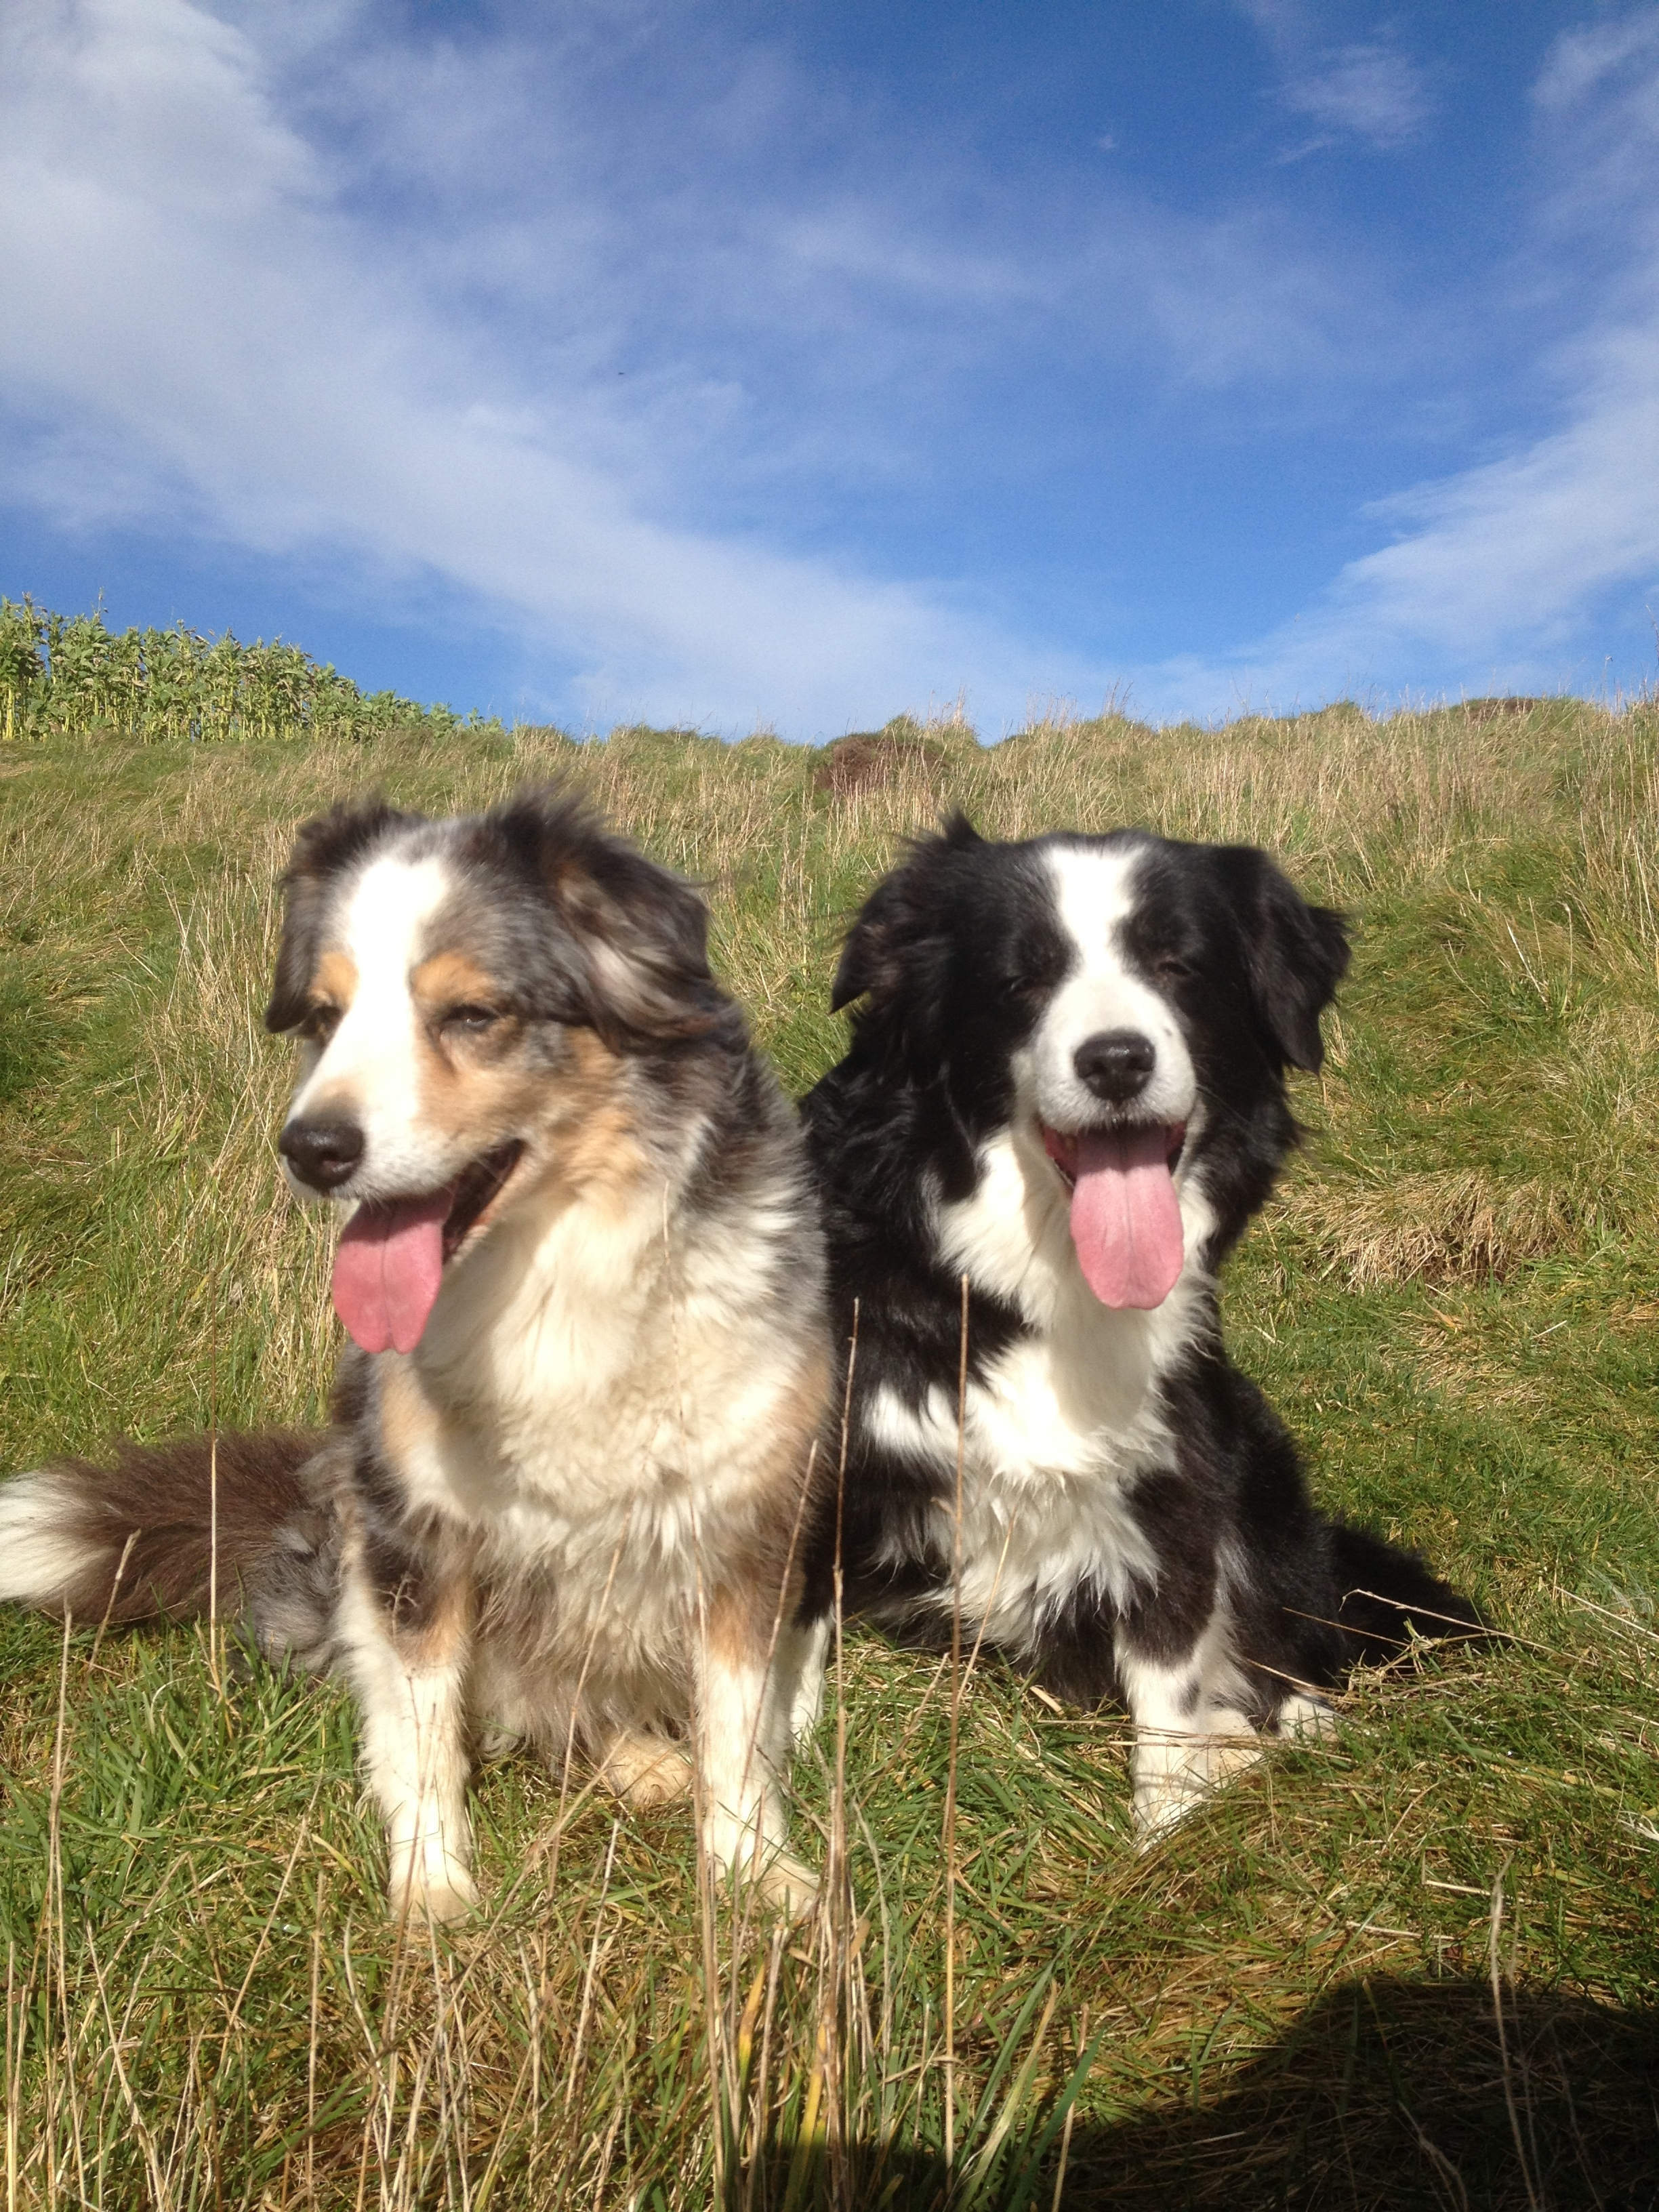 My dogs Llyn and Zip in their younger years!